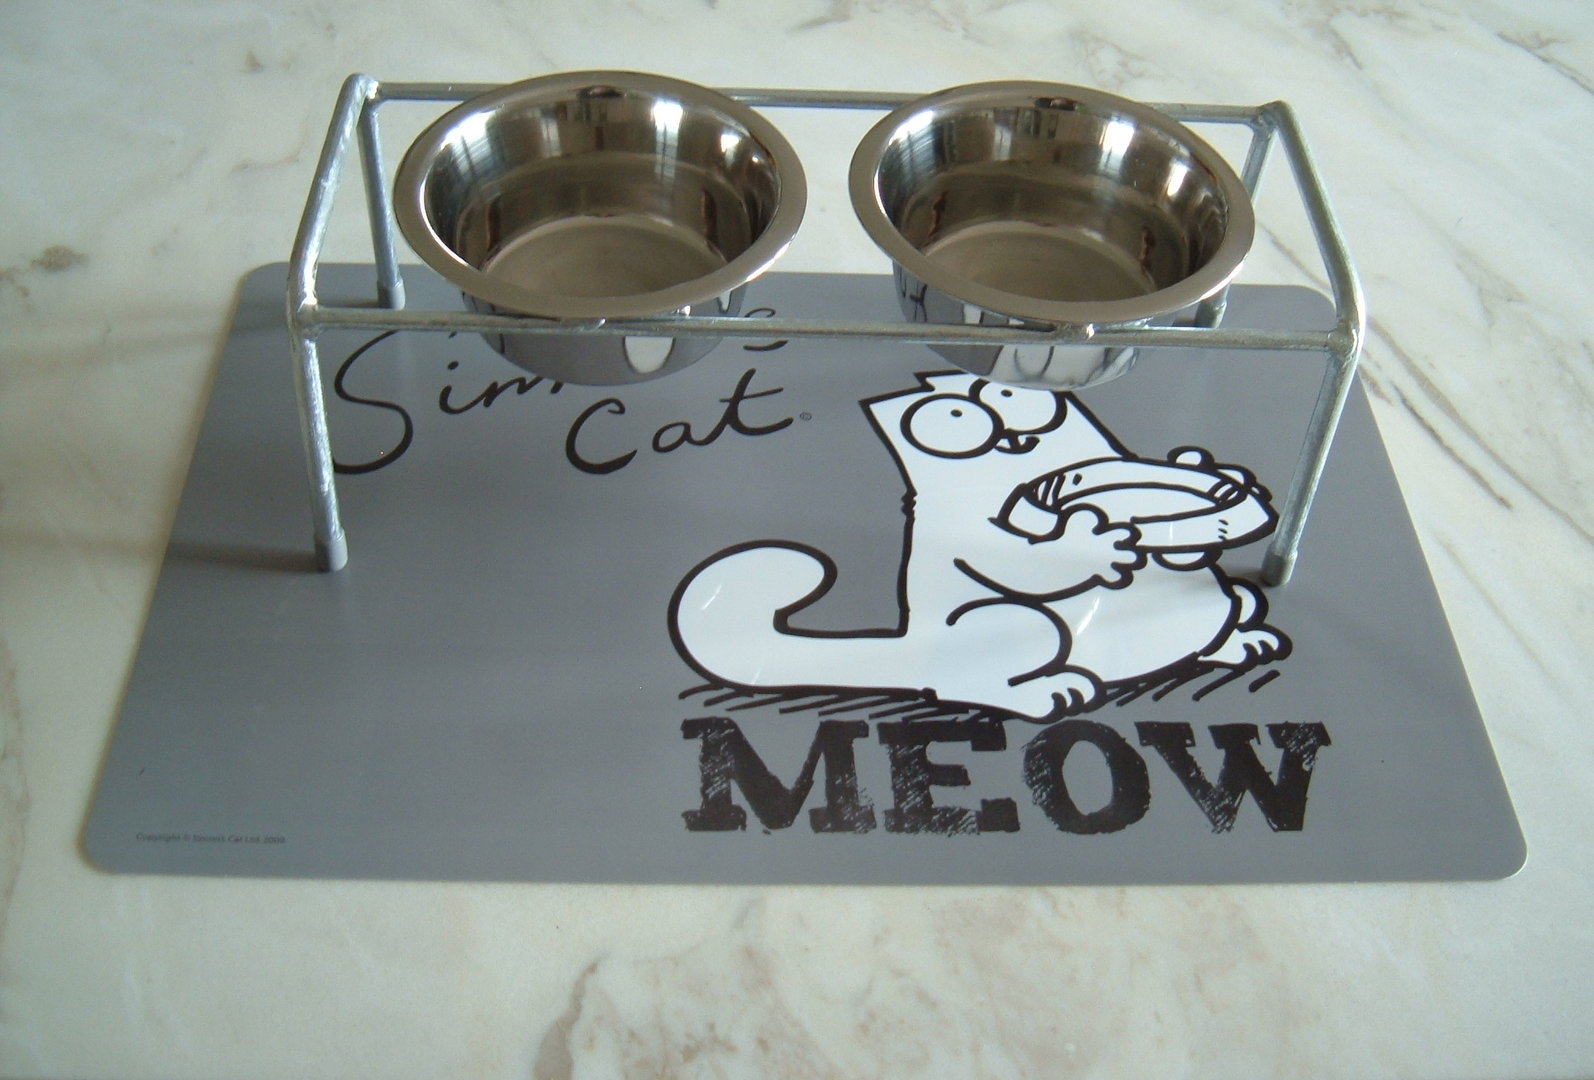 Feedable for cats incl. 2 stainless steel cups and cup support - Simon`s Cat